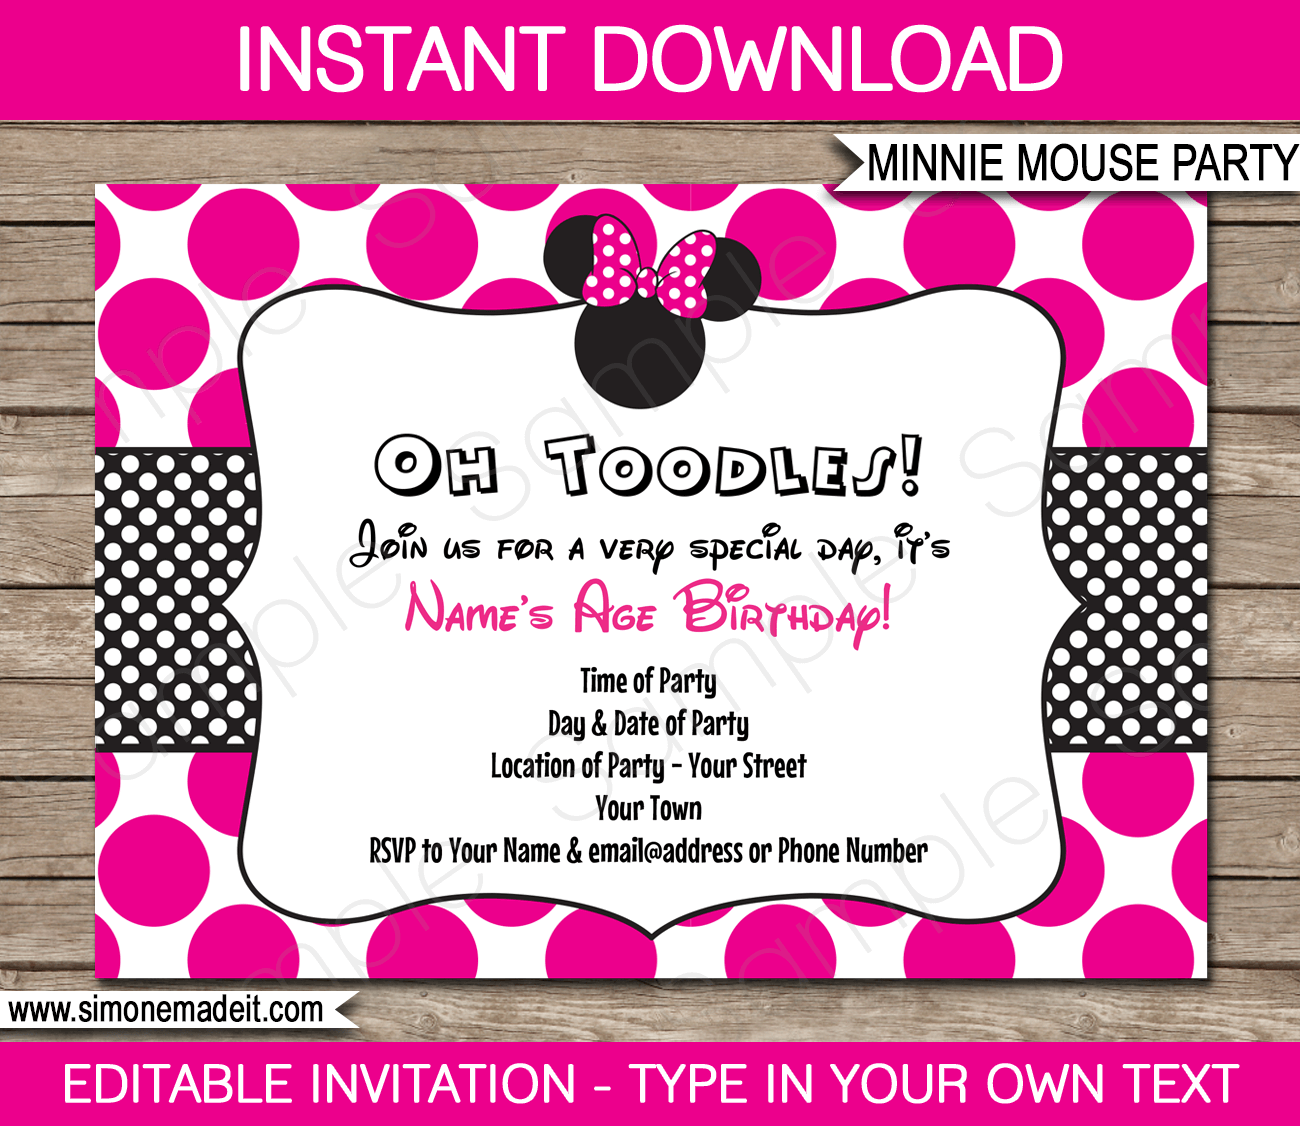 Printable Minnie Mouse Party Invitation Template Perfect Minnie